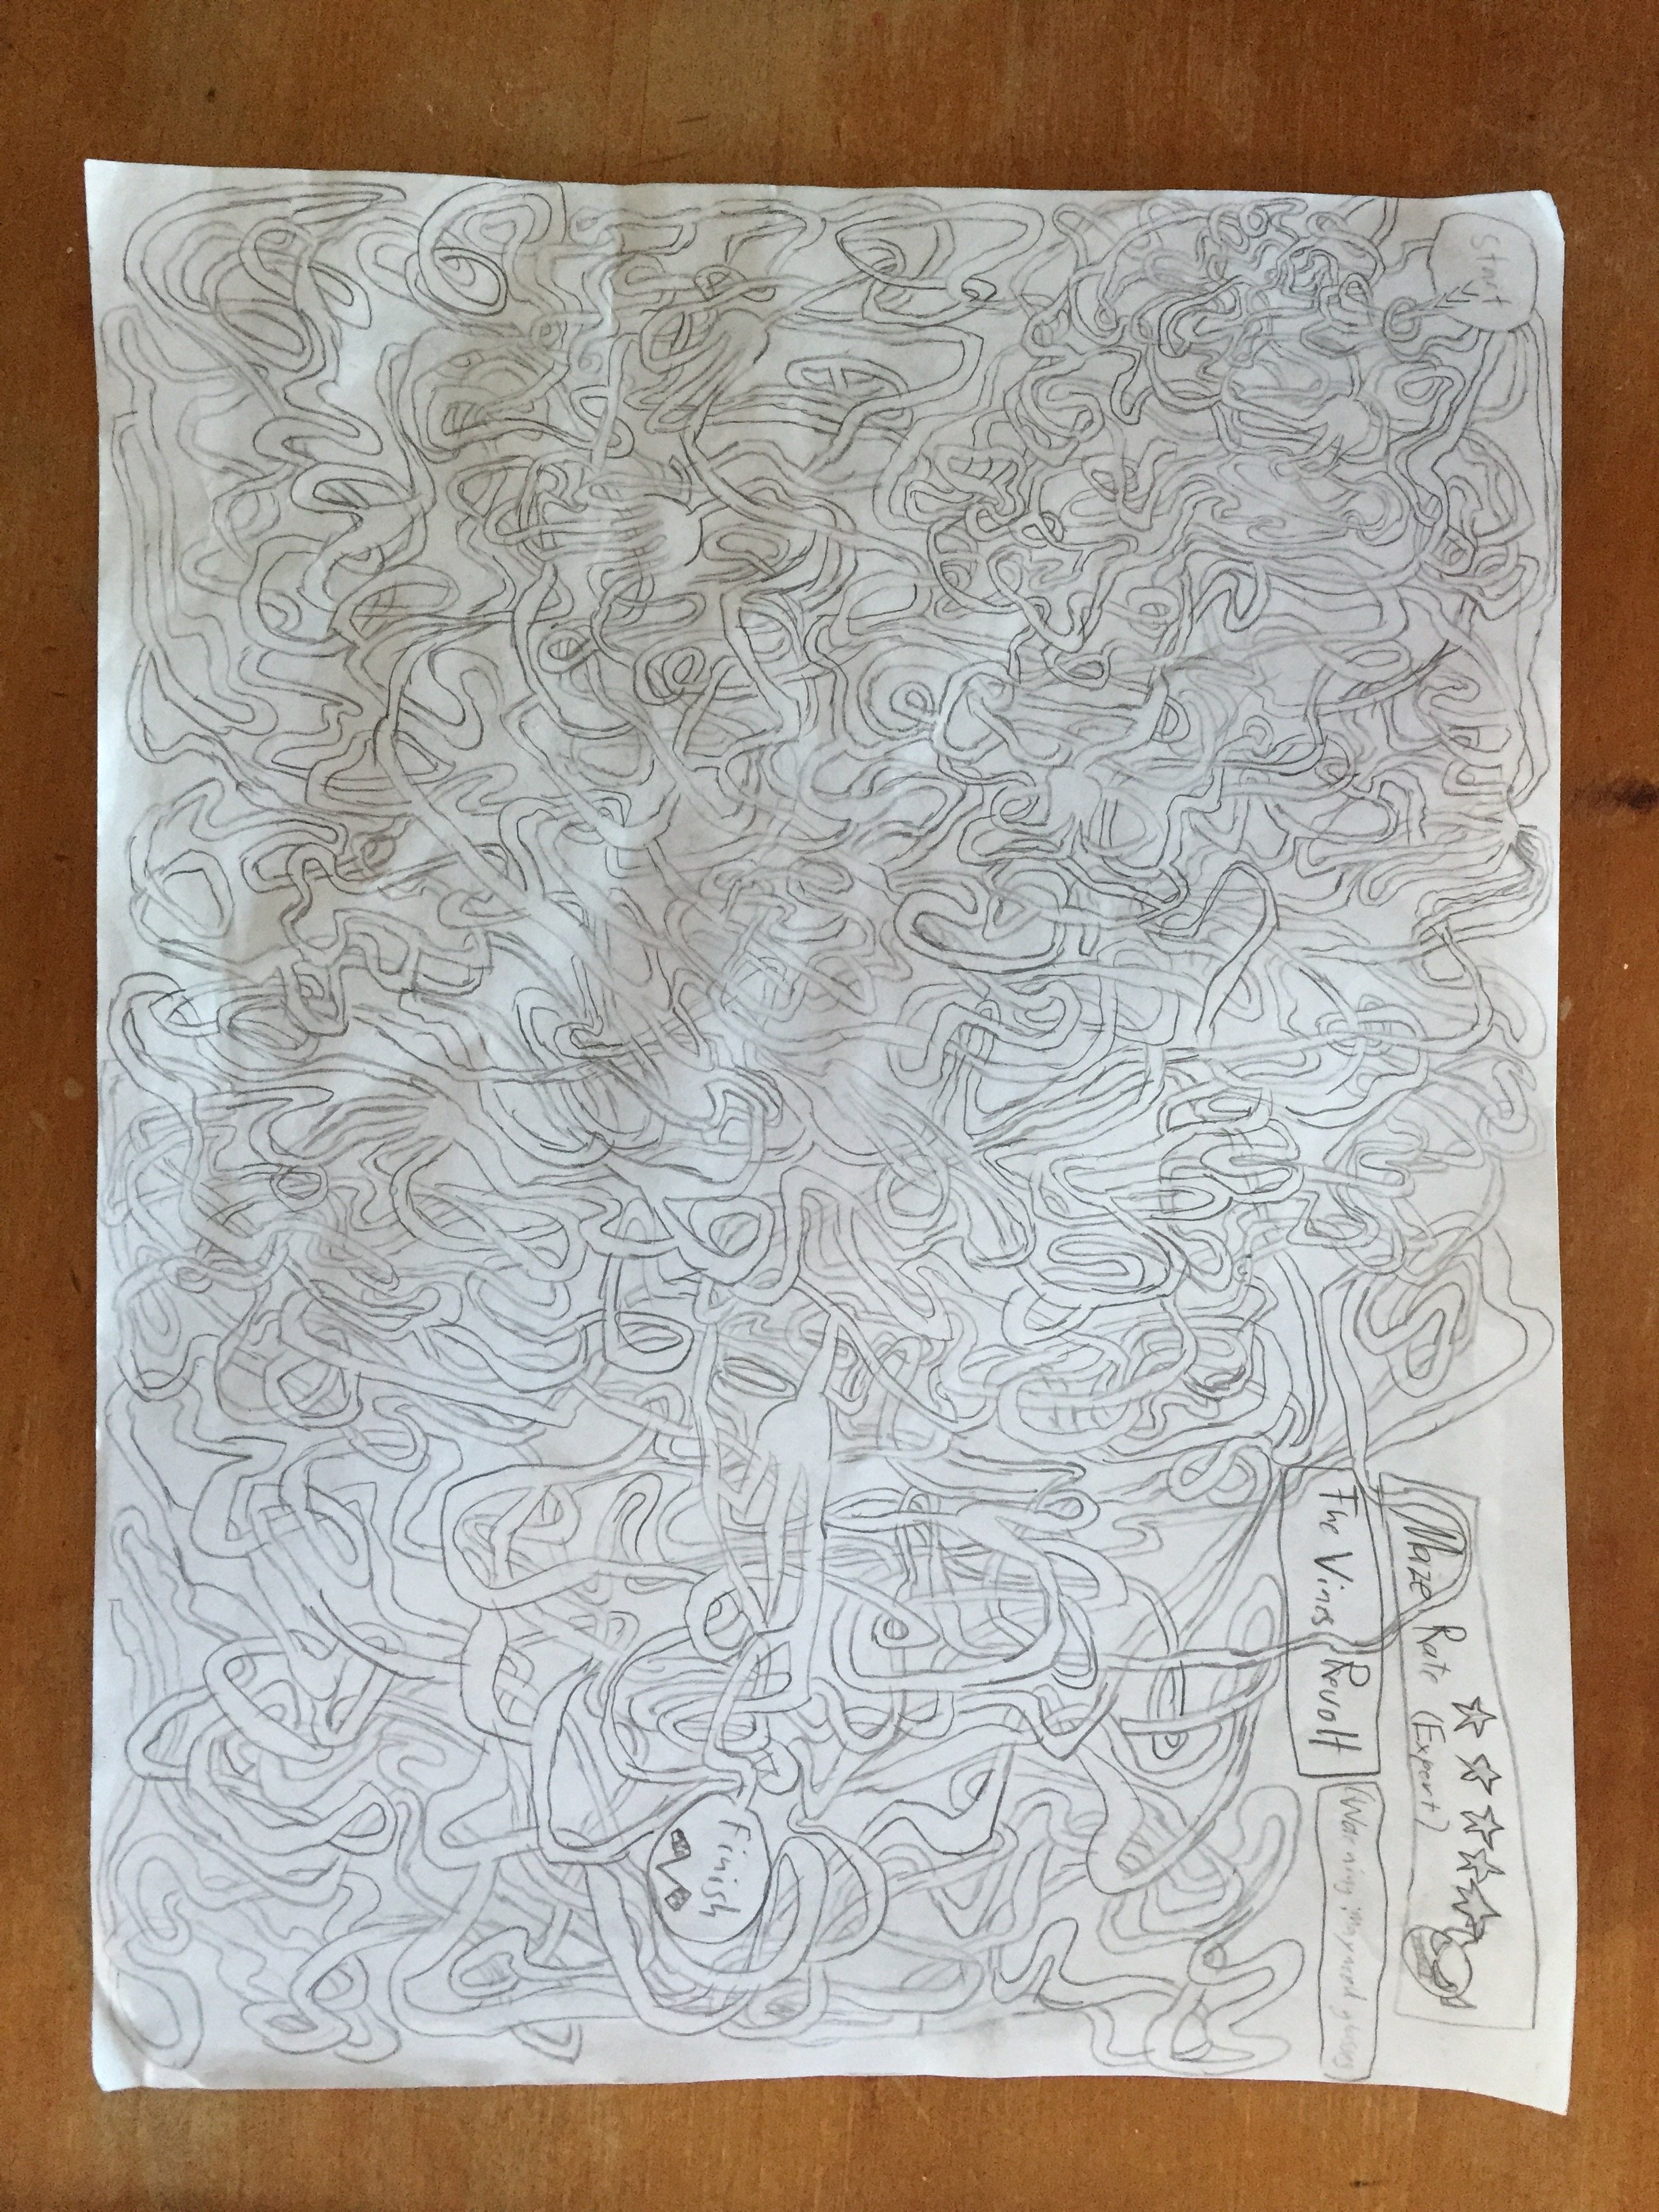 Drawn maze intricate Incredibly son drawing his mazes